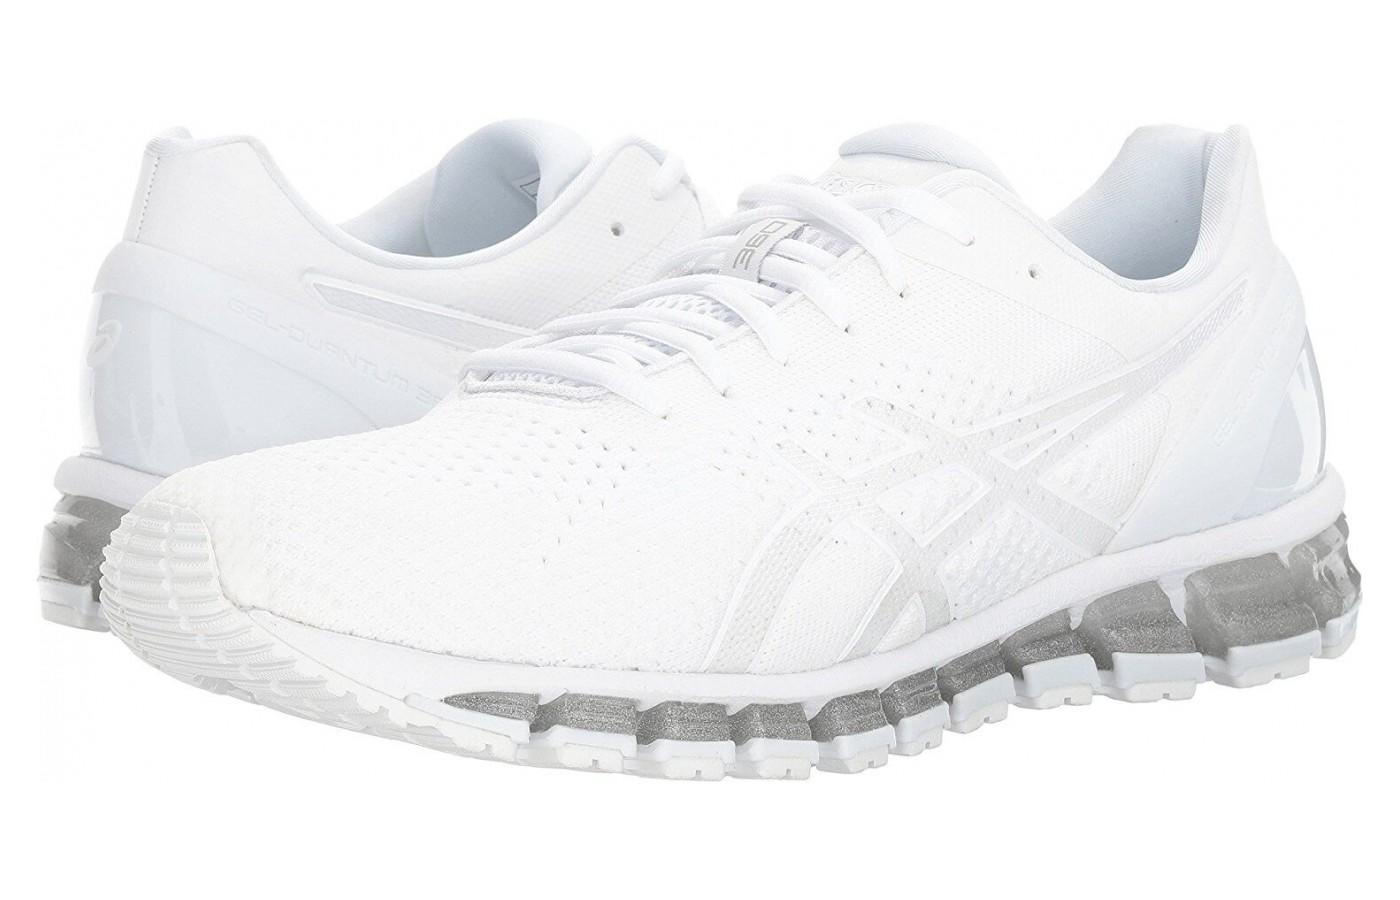 new product 3878c d5189 ... The Asics Gel Quantum 360 Knit has gel cushioning in both the rearfoot  and forefoot